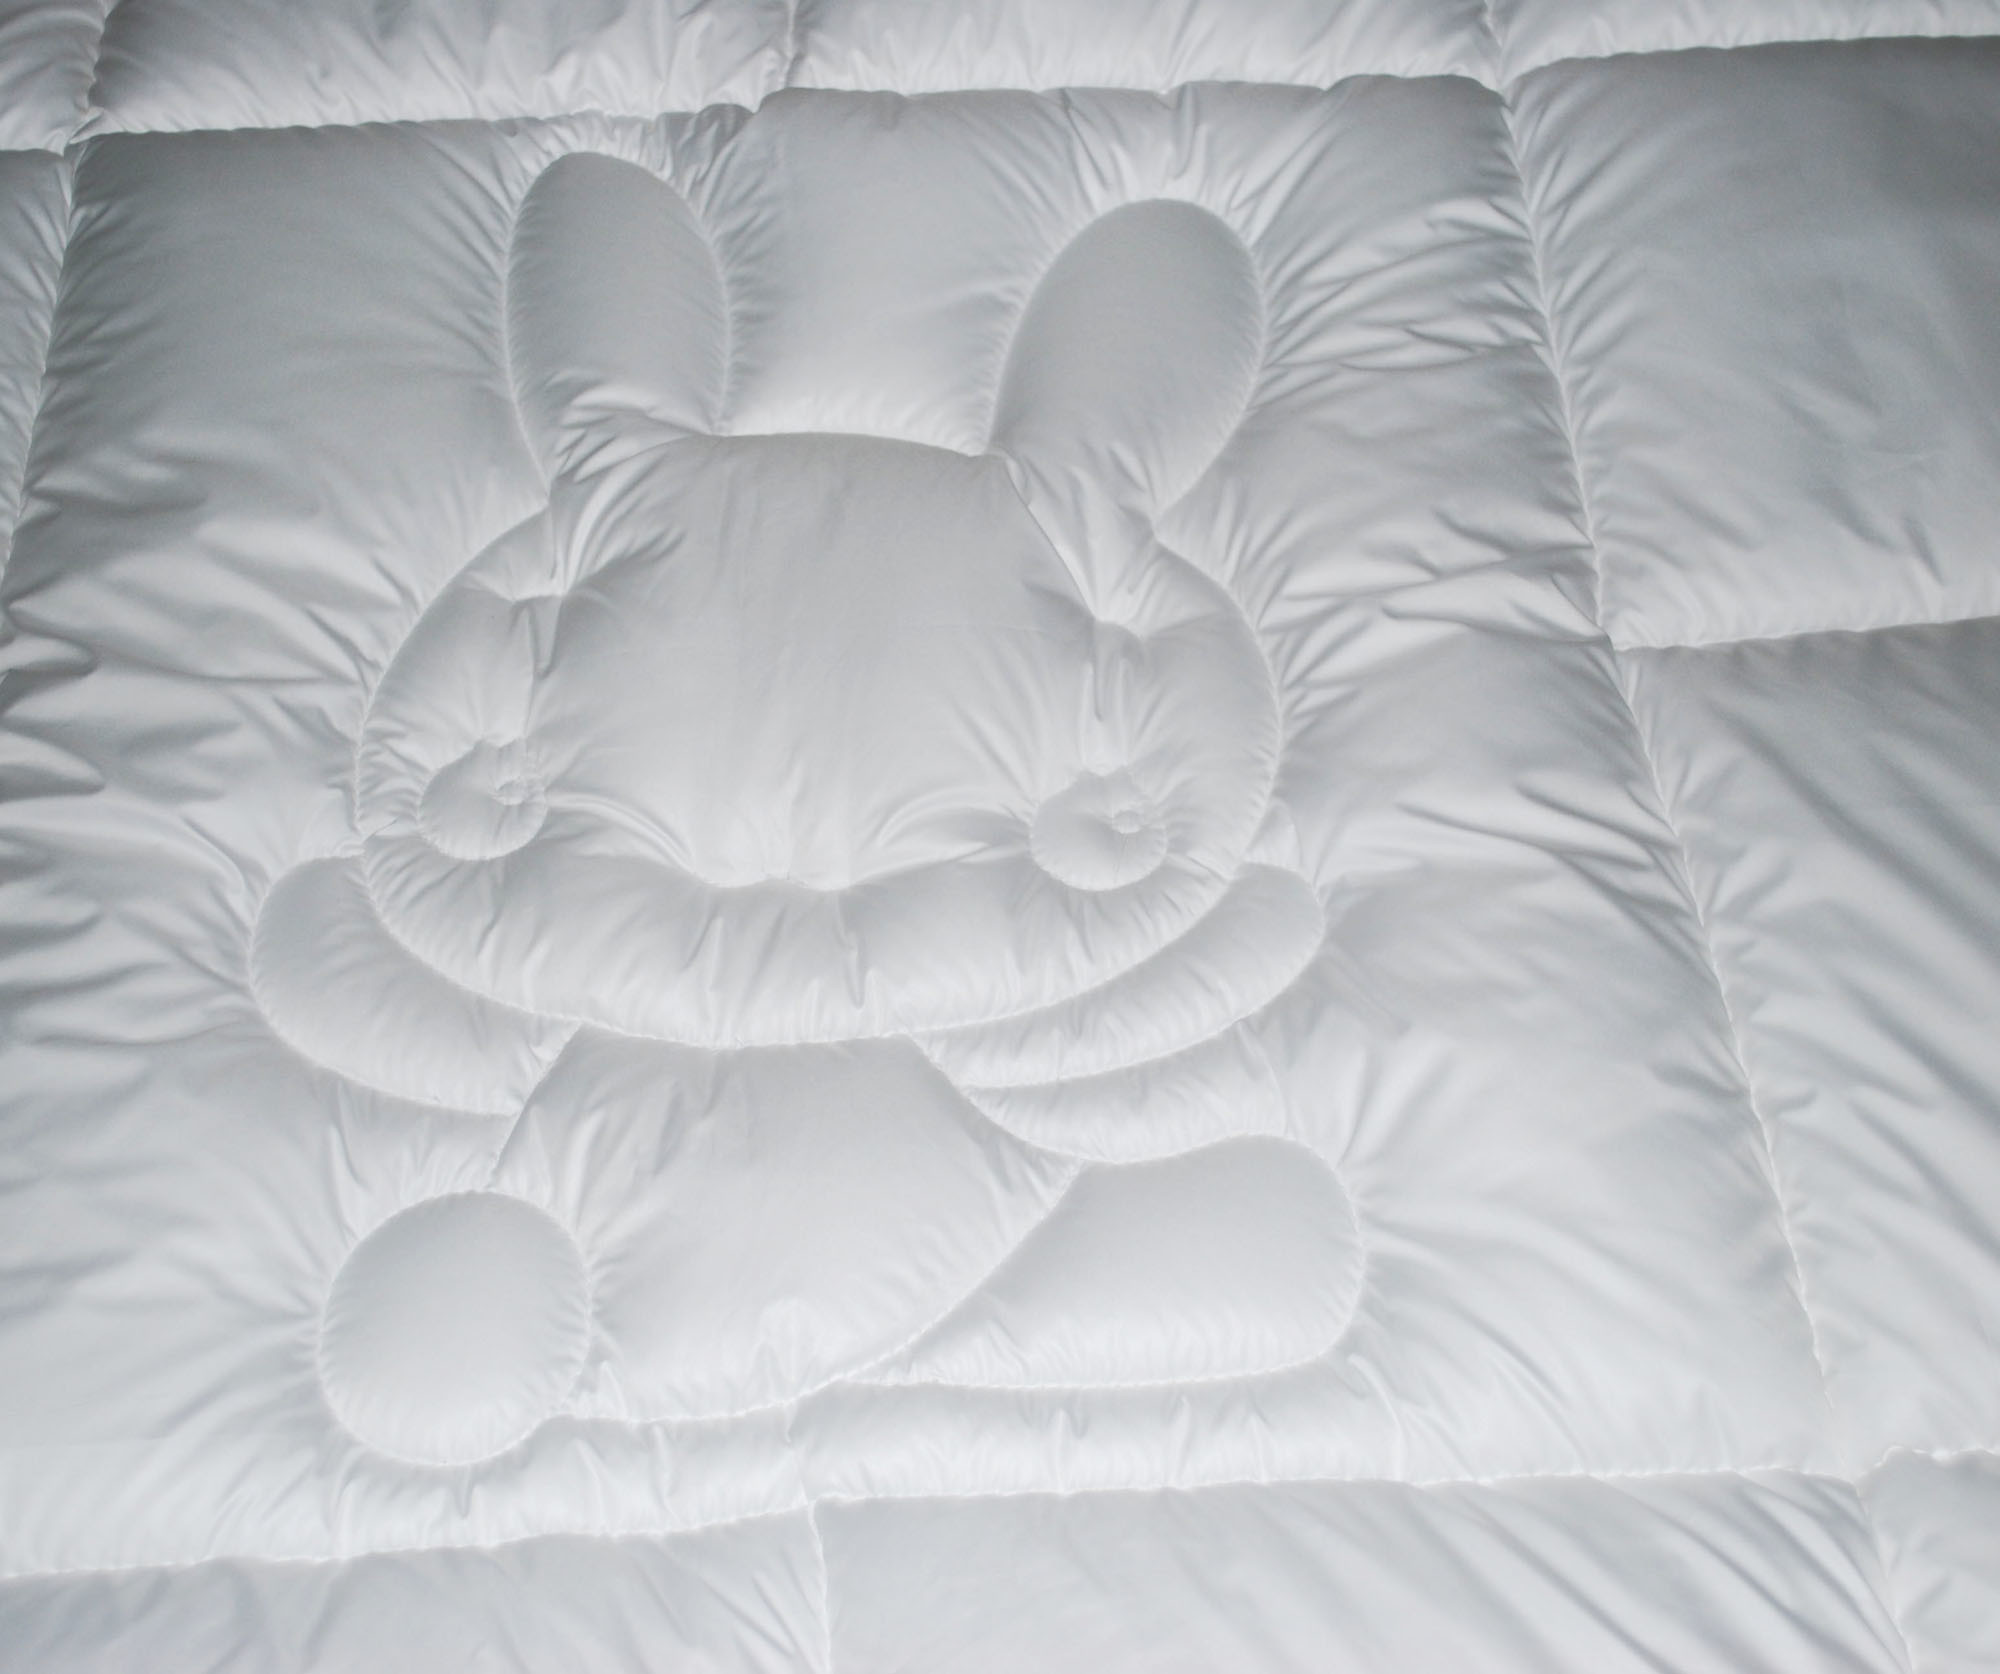 Luxury Super Soft Microfiber Quilt with Rabbit Design